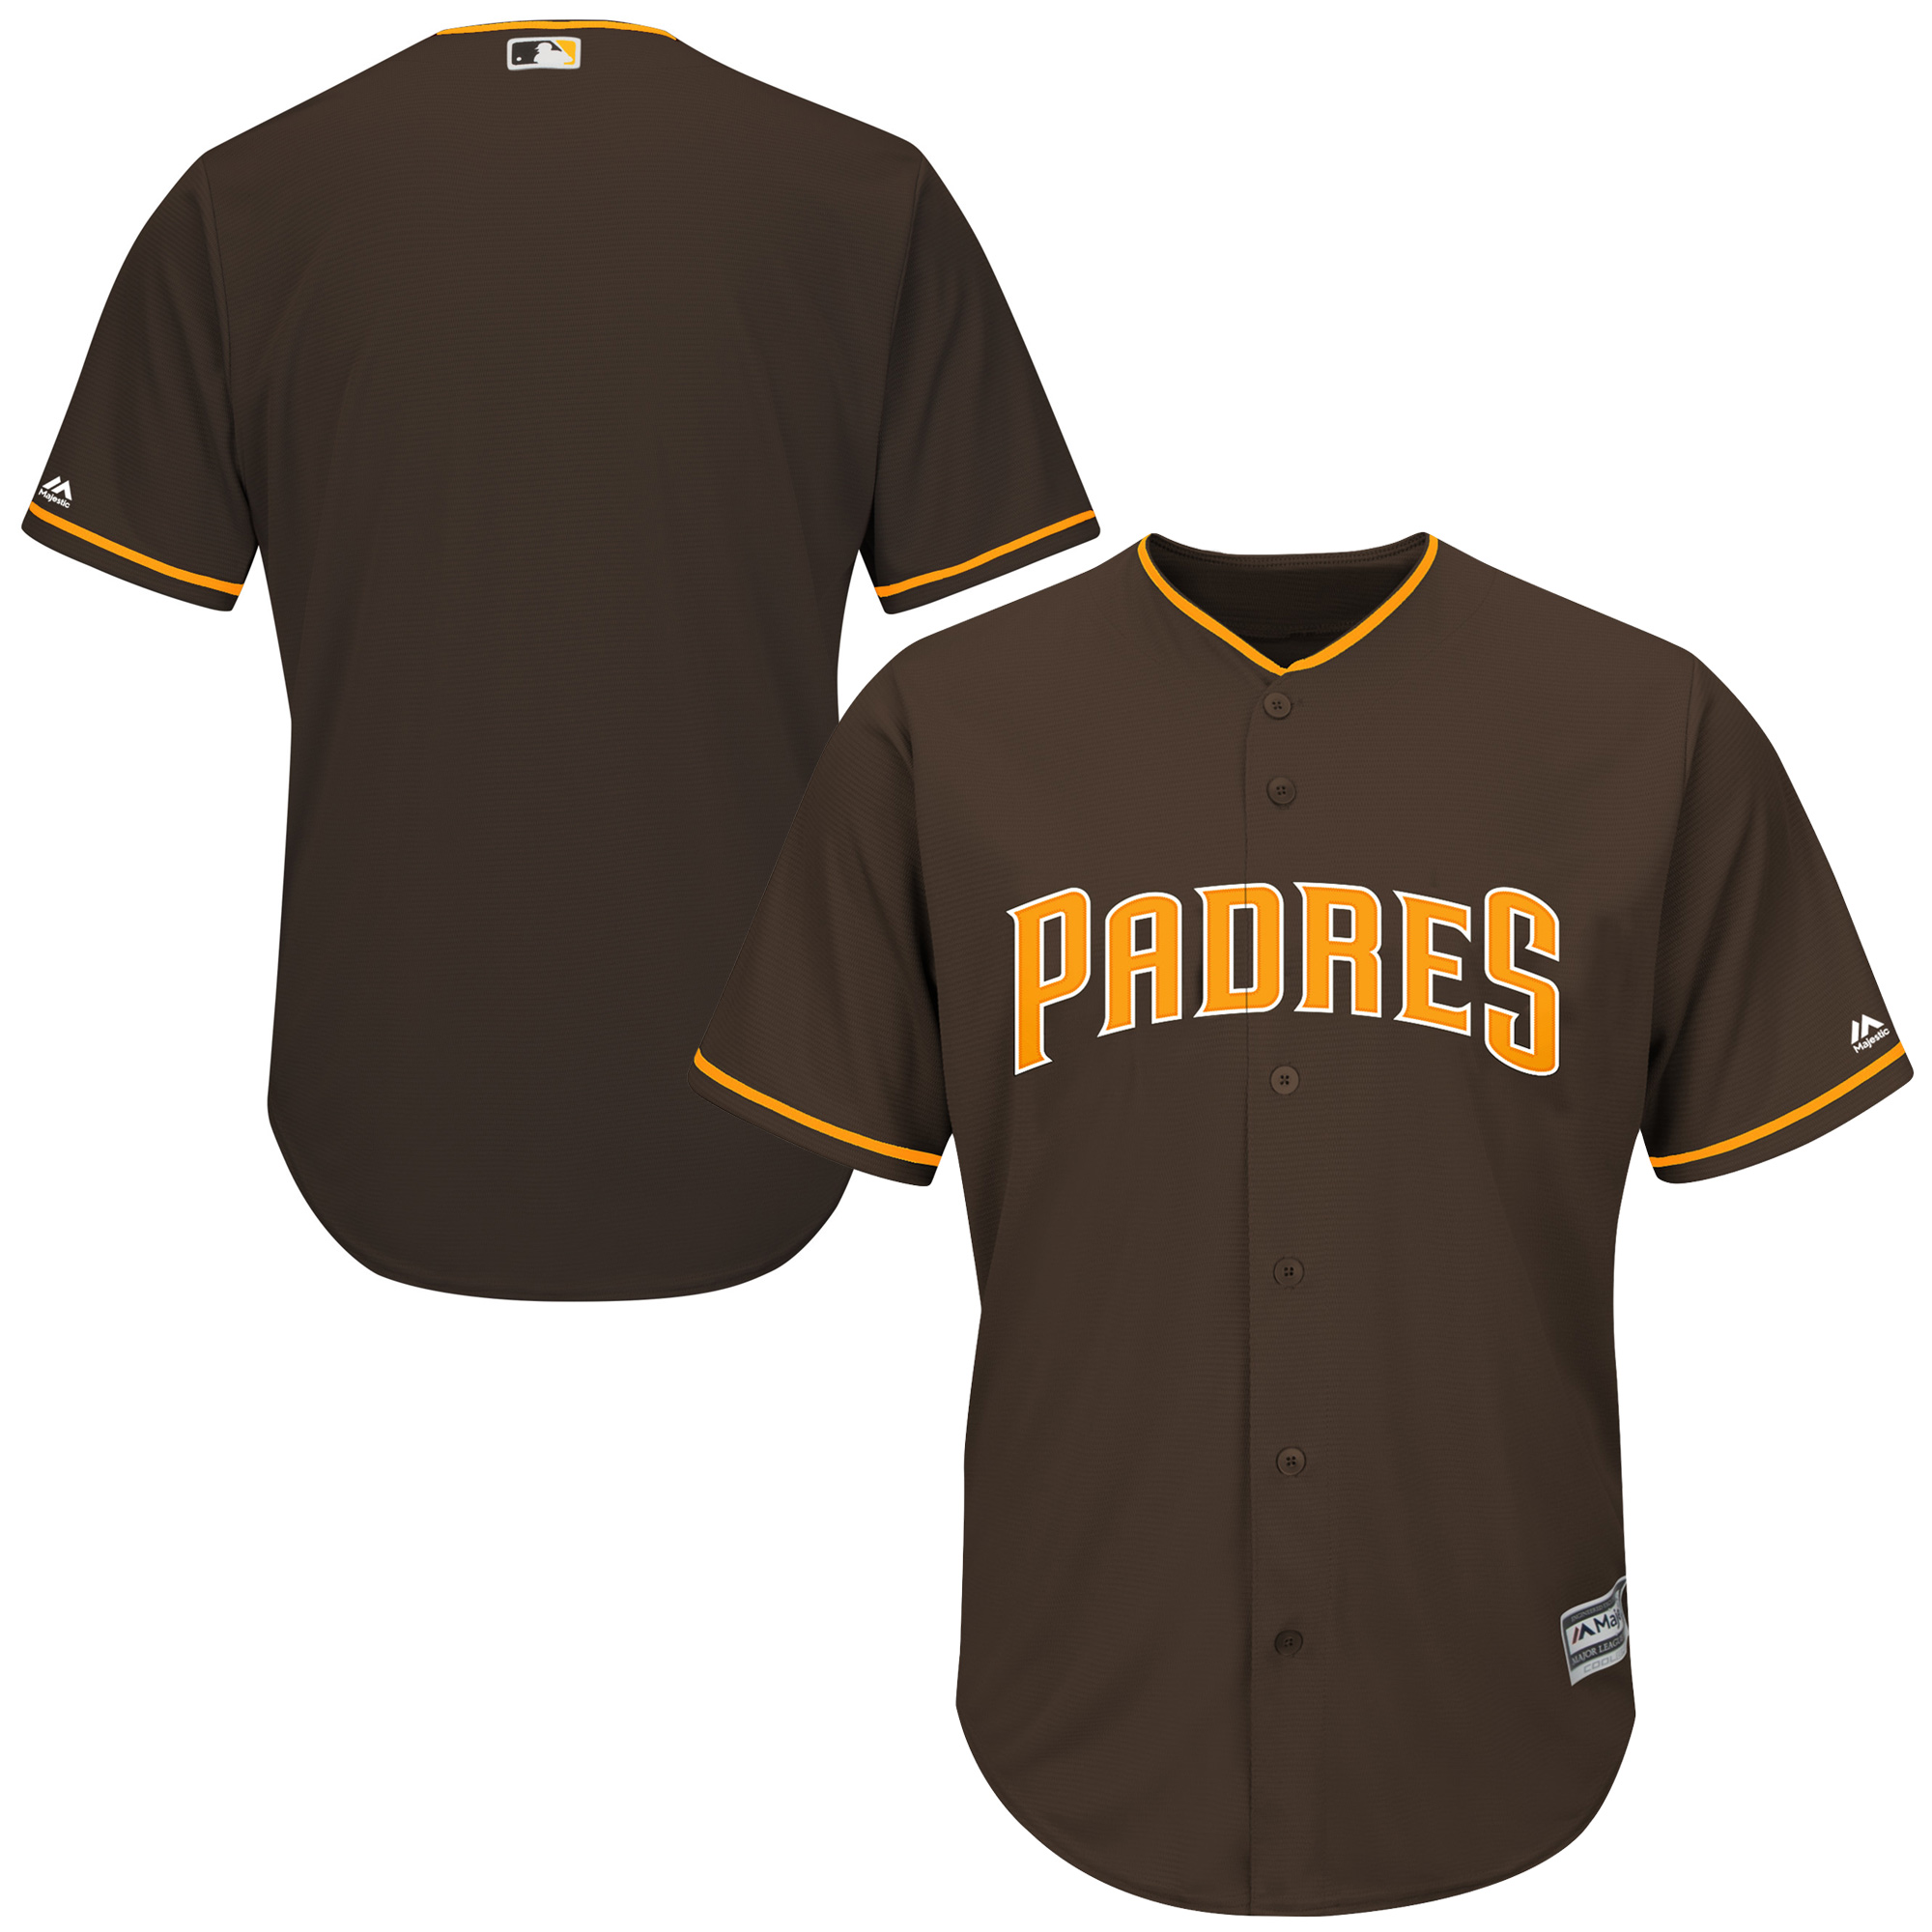 San Diego Padres Majestic Official Cool Base Jersey - Brown